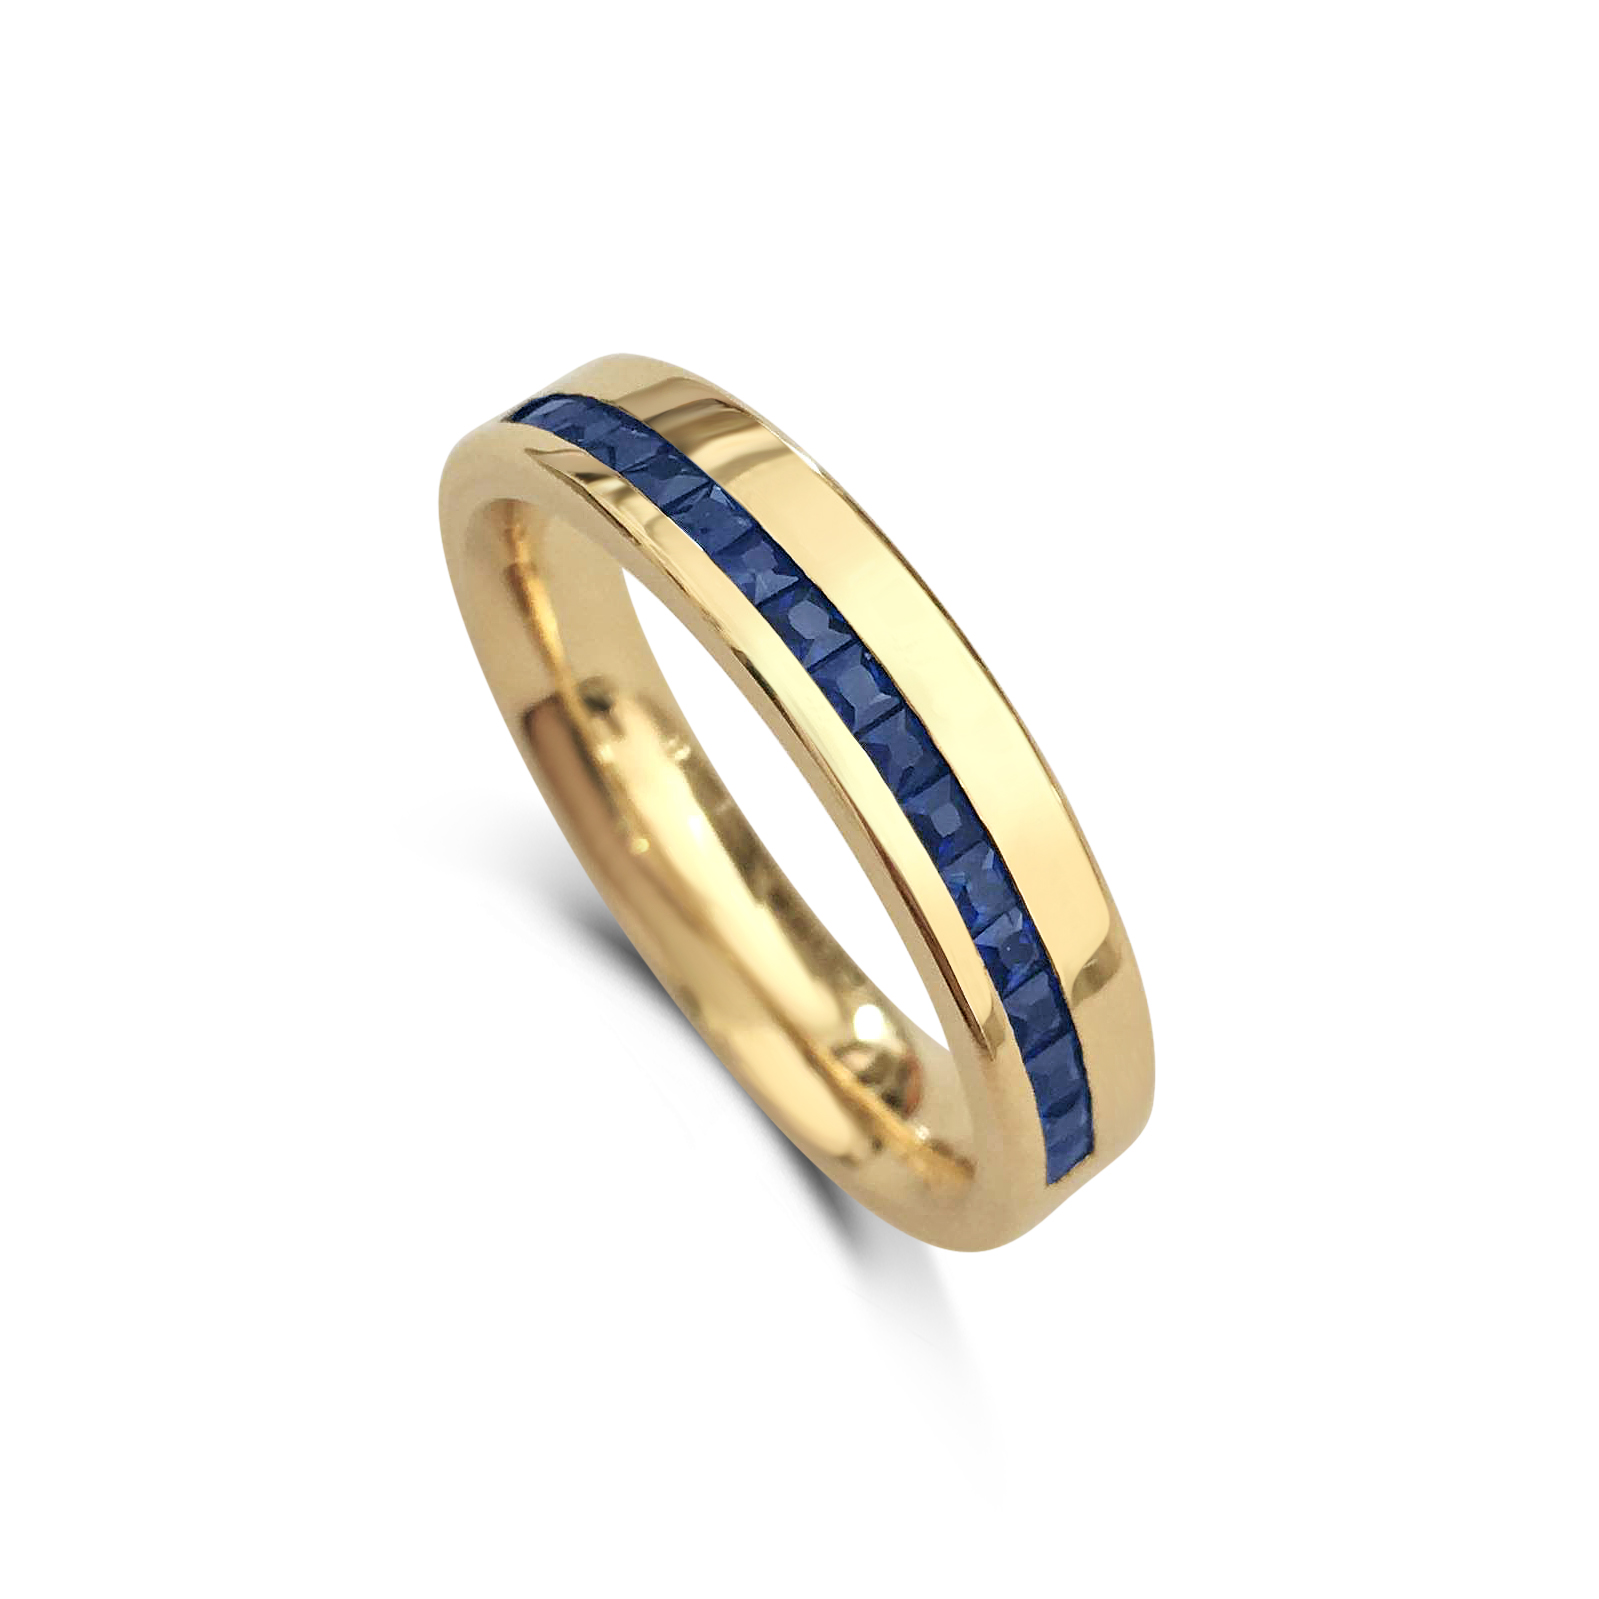 Sapphire-and-18ct-yellow-gold-gentlemans-wedding-ring.jpg